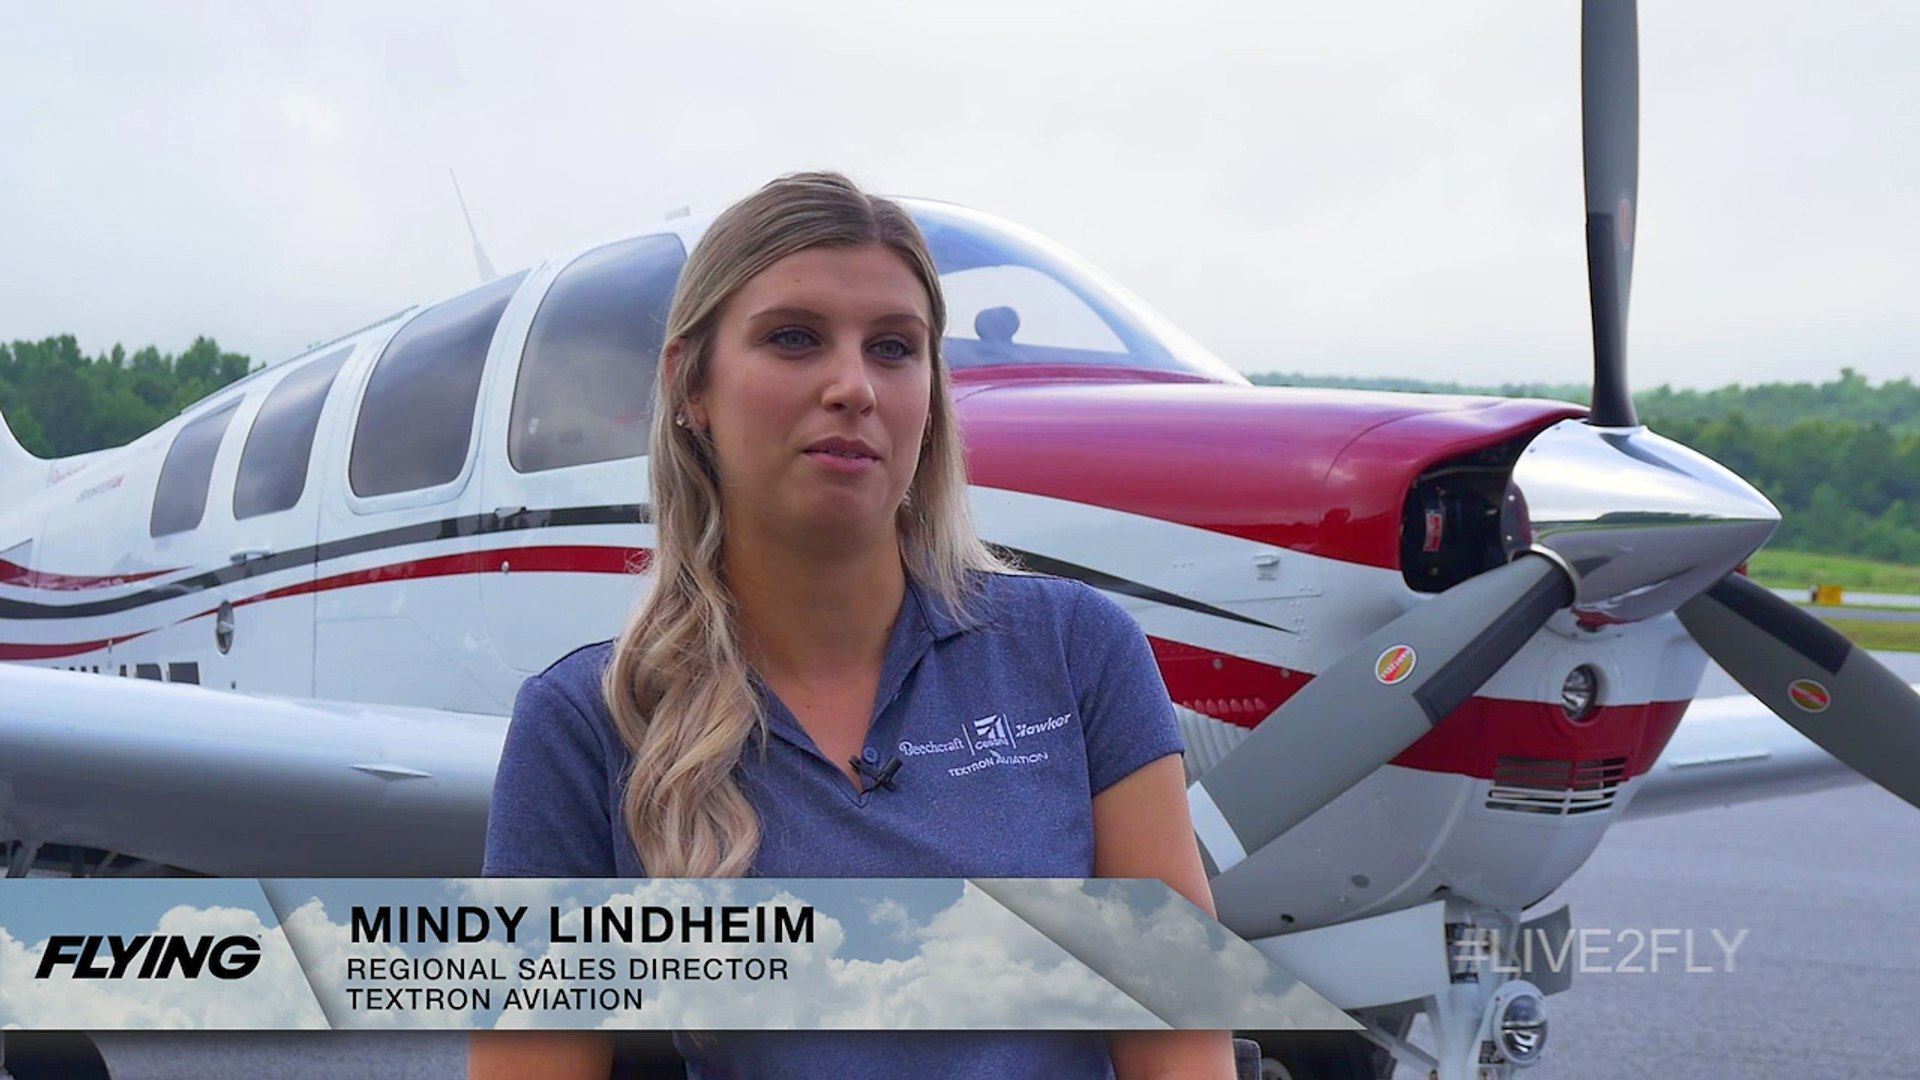 #Live2Series: Mindy Lindheim, Regional Sales Director for Textron Aviation